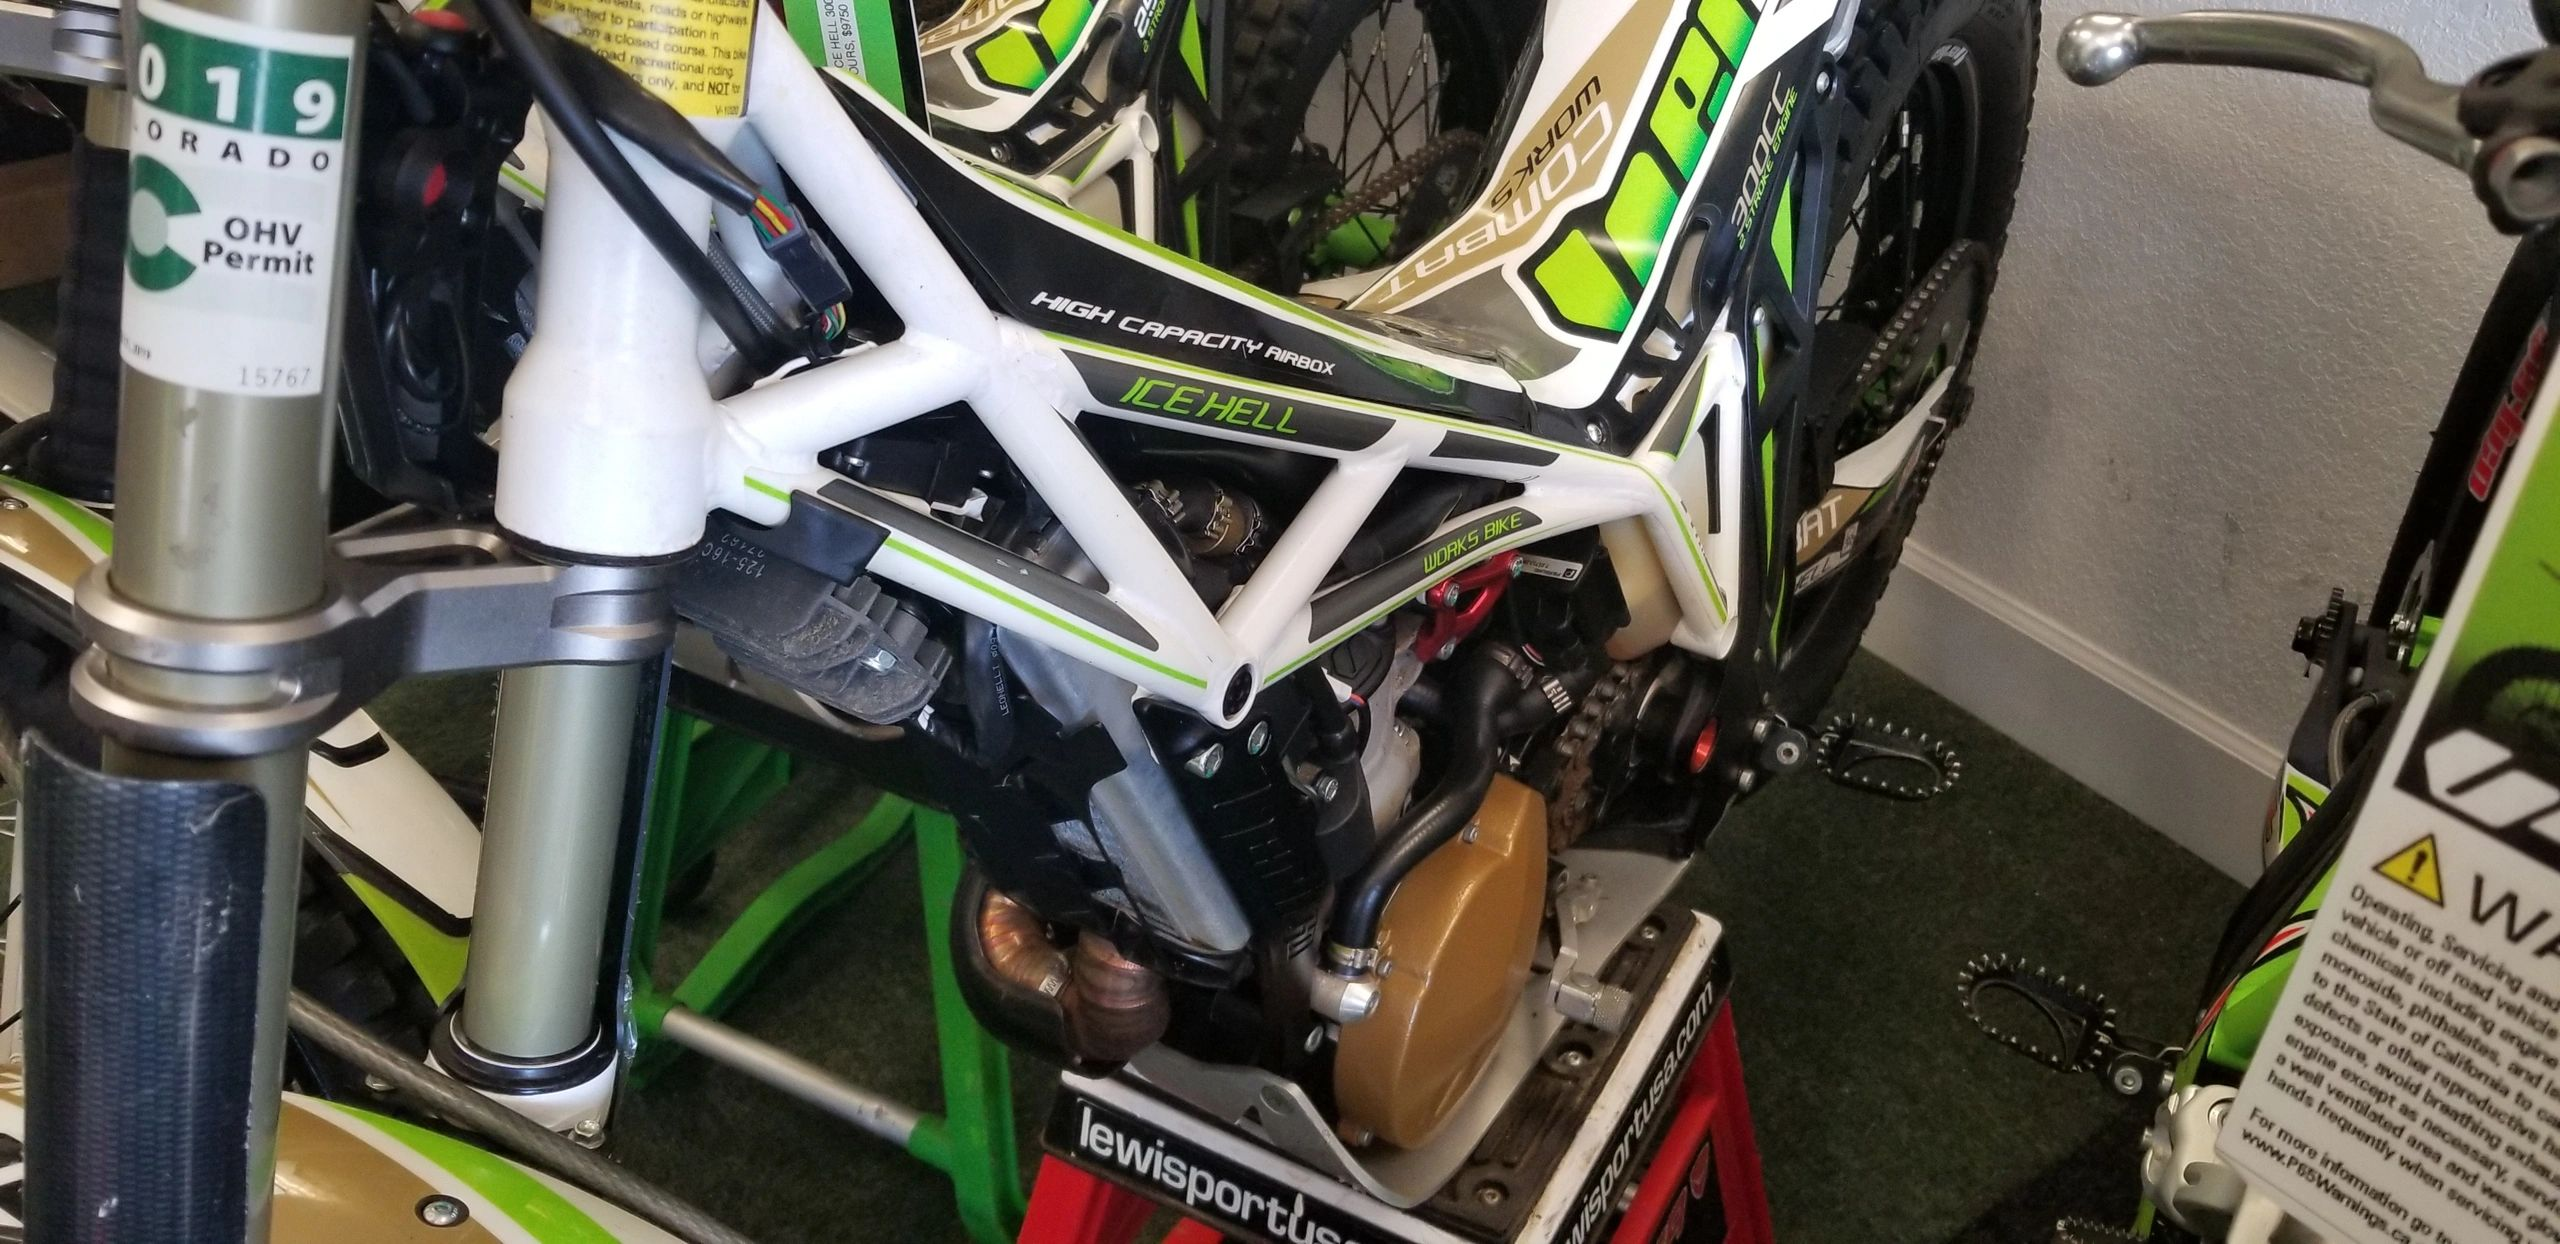 "{""blocks"":[{""key"":""471bs"",""text"":""2017 300 FI Vertigo  \""ICE HELL\""-- VERY low hours --\""Consignment bike\"" very clean bike ready to compete--$7250"",""type"":""unstyled"",""depth"":0,""inlineStyleRanges"":[],""entityRanges"":[],""data"":{}},{""key"":""c6pne"",""text"":""call shop for more details. 209-785-6878"",""type"":""unstyled"",""depth"":0,""inlineStyleRanges"":[],""entityRanges"":[],""data"":{}}],""entityMap"":{}}"